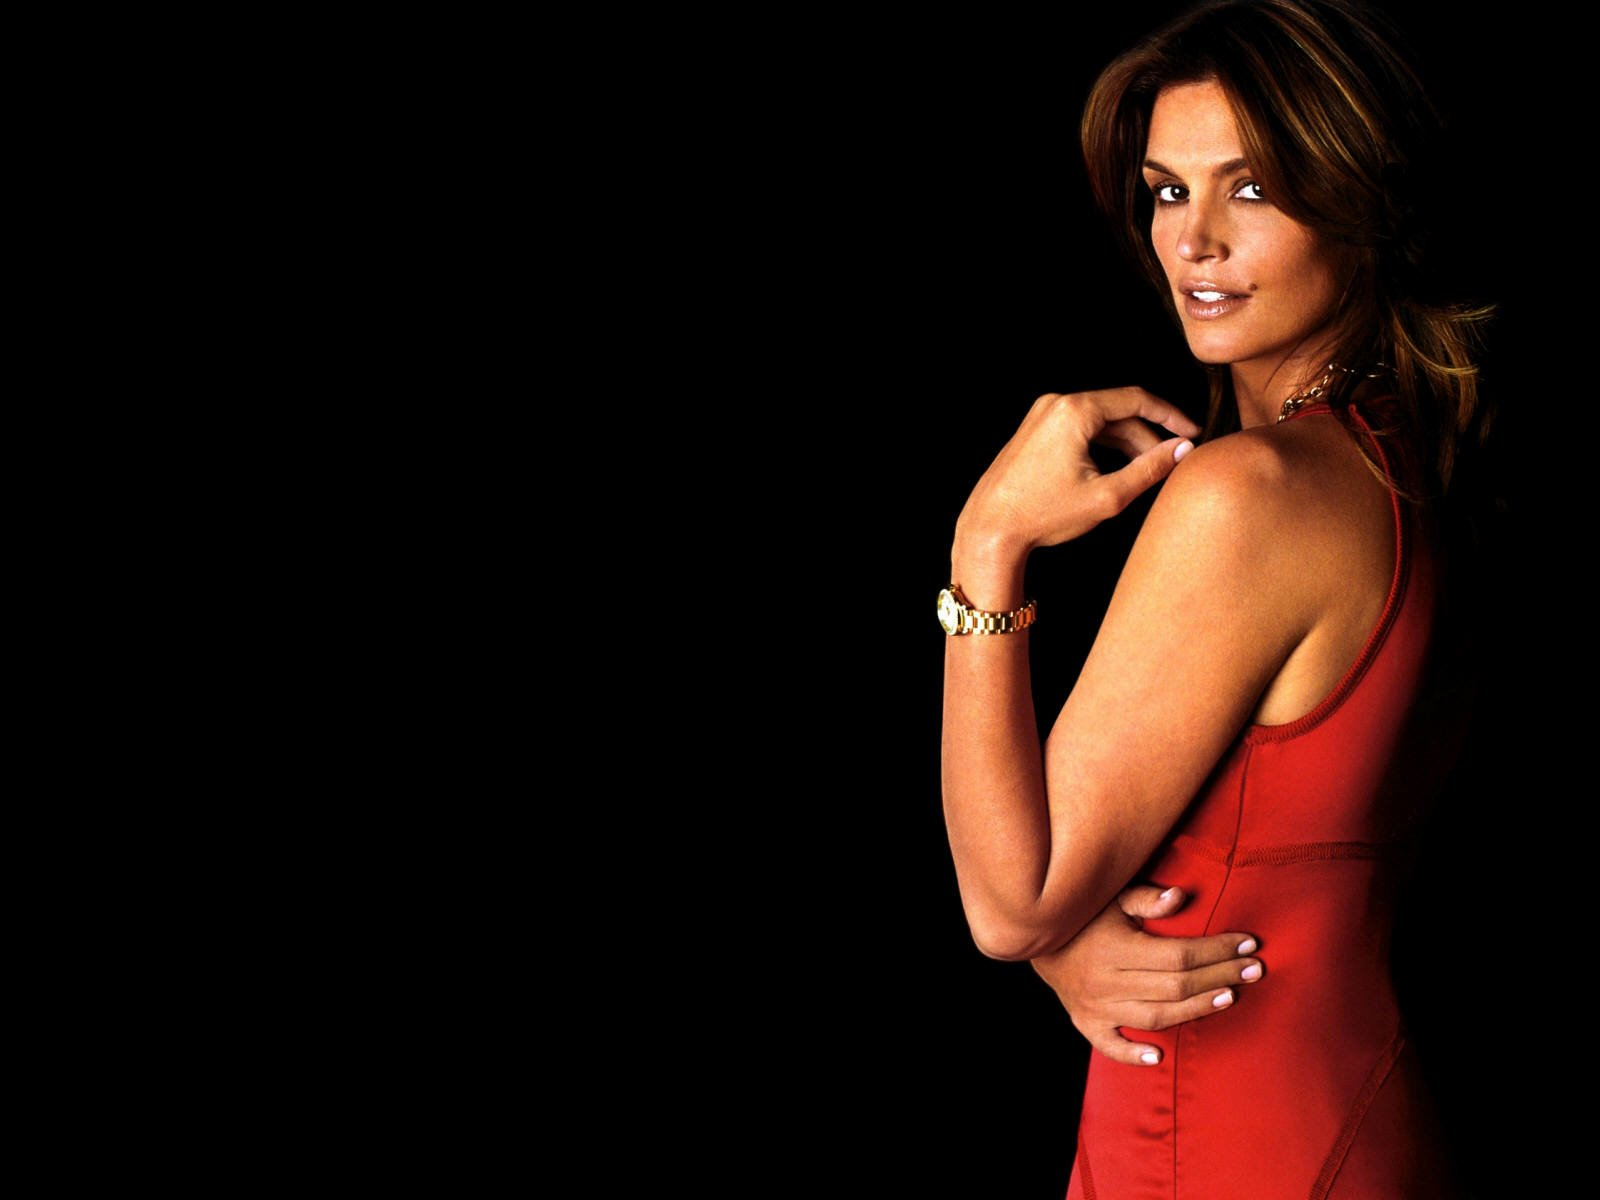 1600x1200 - Cindy Crawford Wallpapers 30